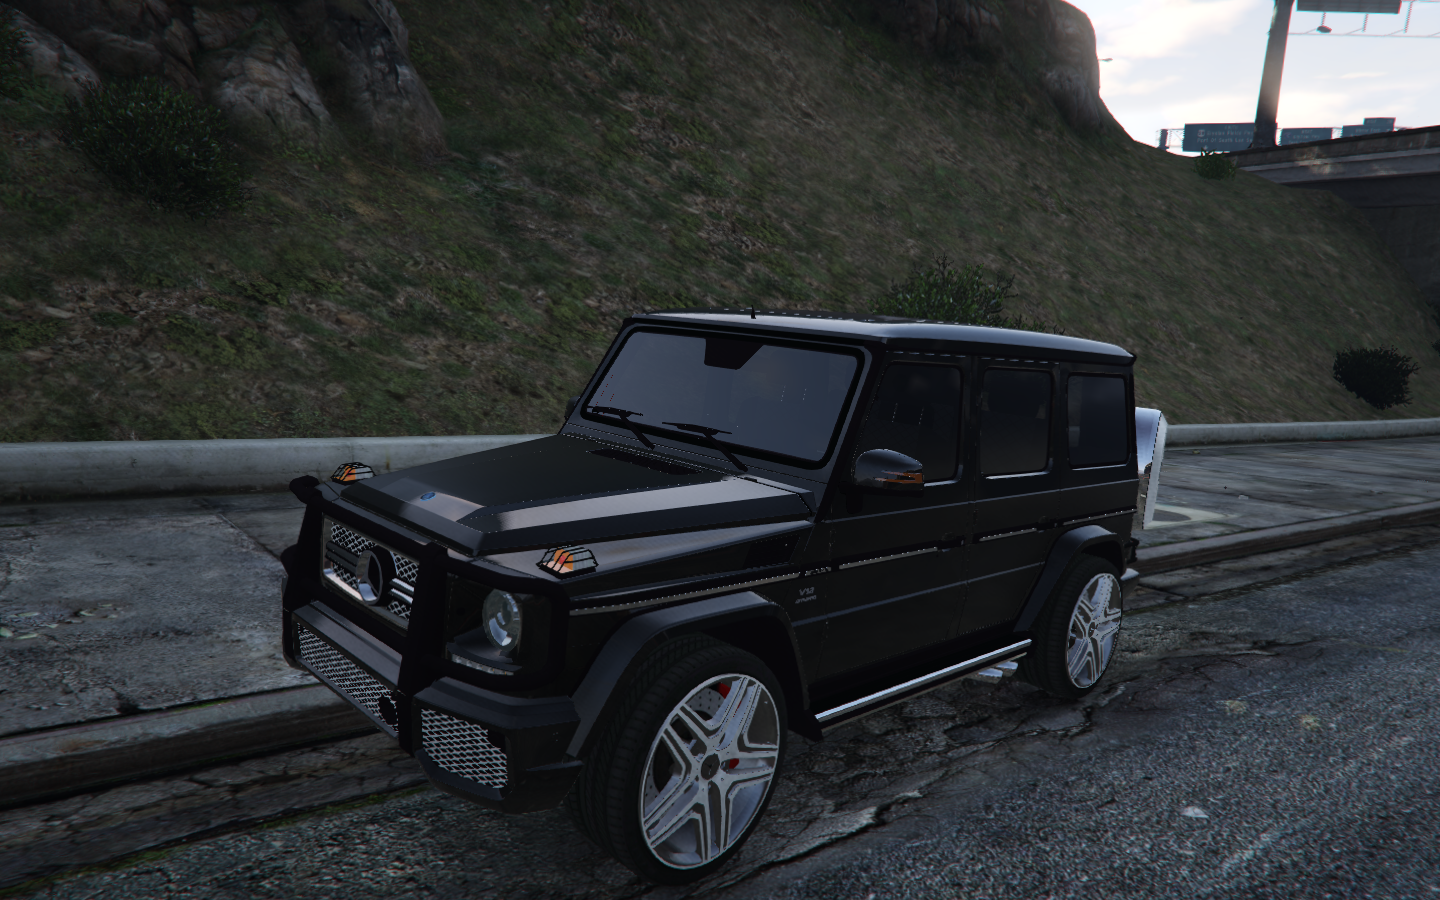 mercedes-benz g65 amg - gta5-mods